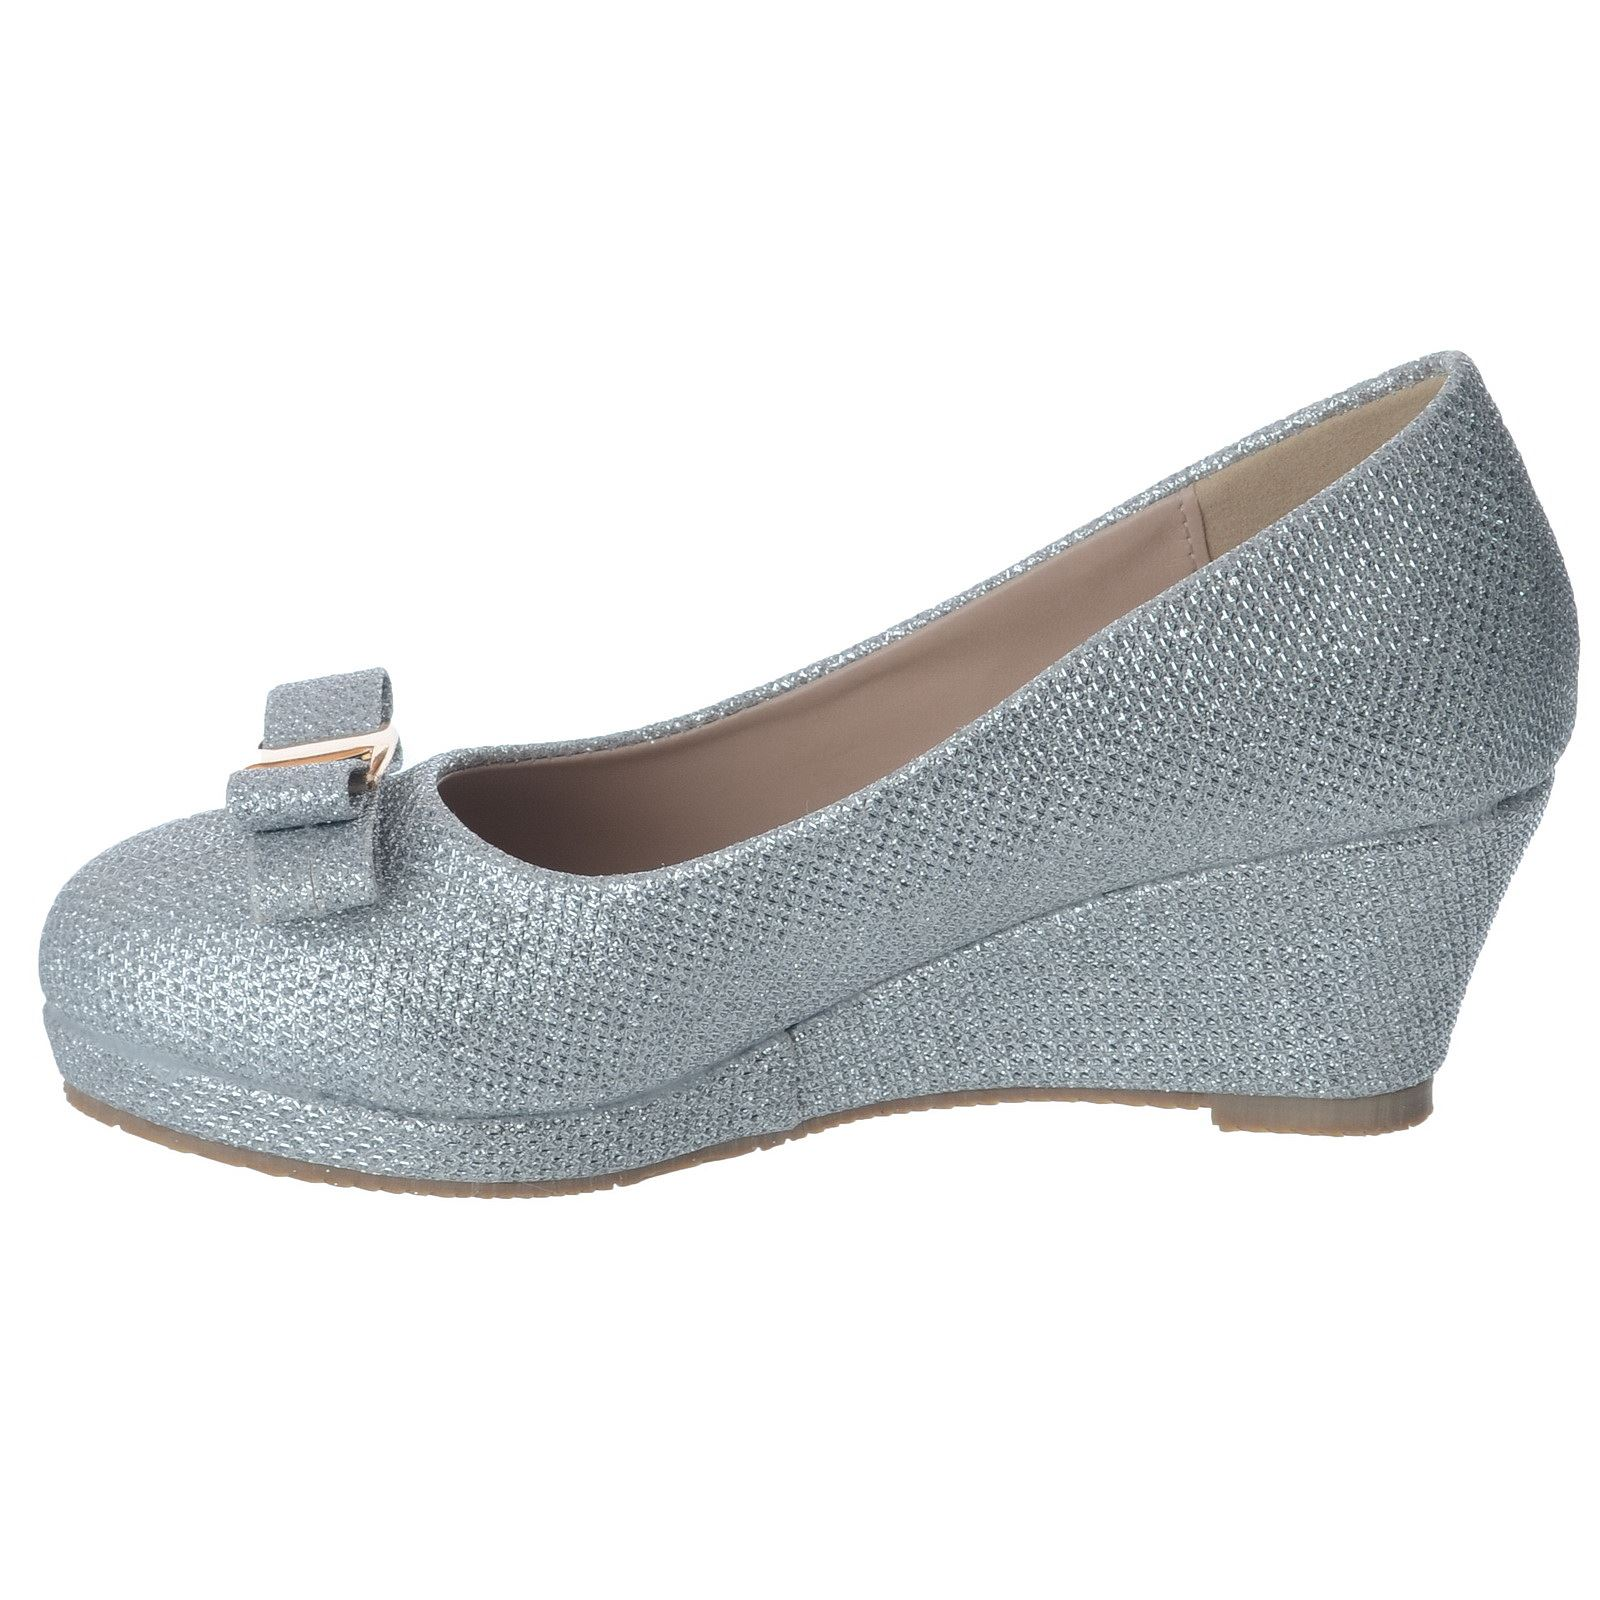 Details about GIRLS KIDS LOW MID HEEL PLATFORM WEDGES SLIP ON PARTY COURT SHOES SANDALS SIZE